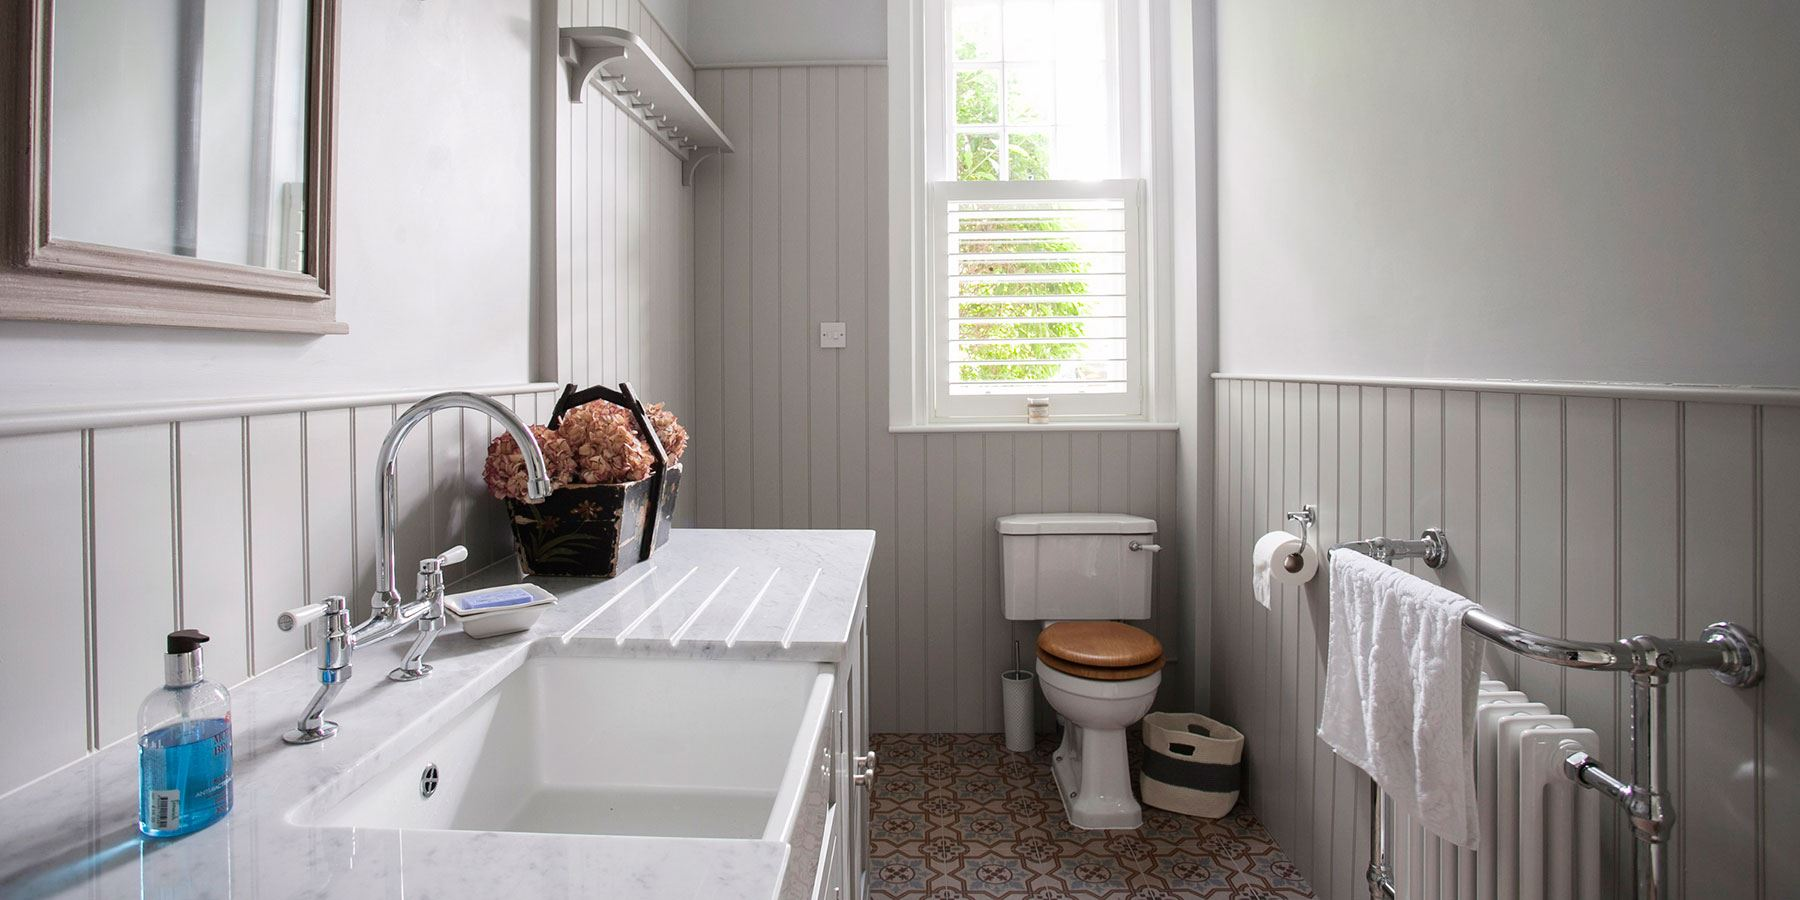 Small space solutions for your home - Small spaces solutions pict ...